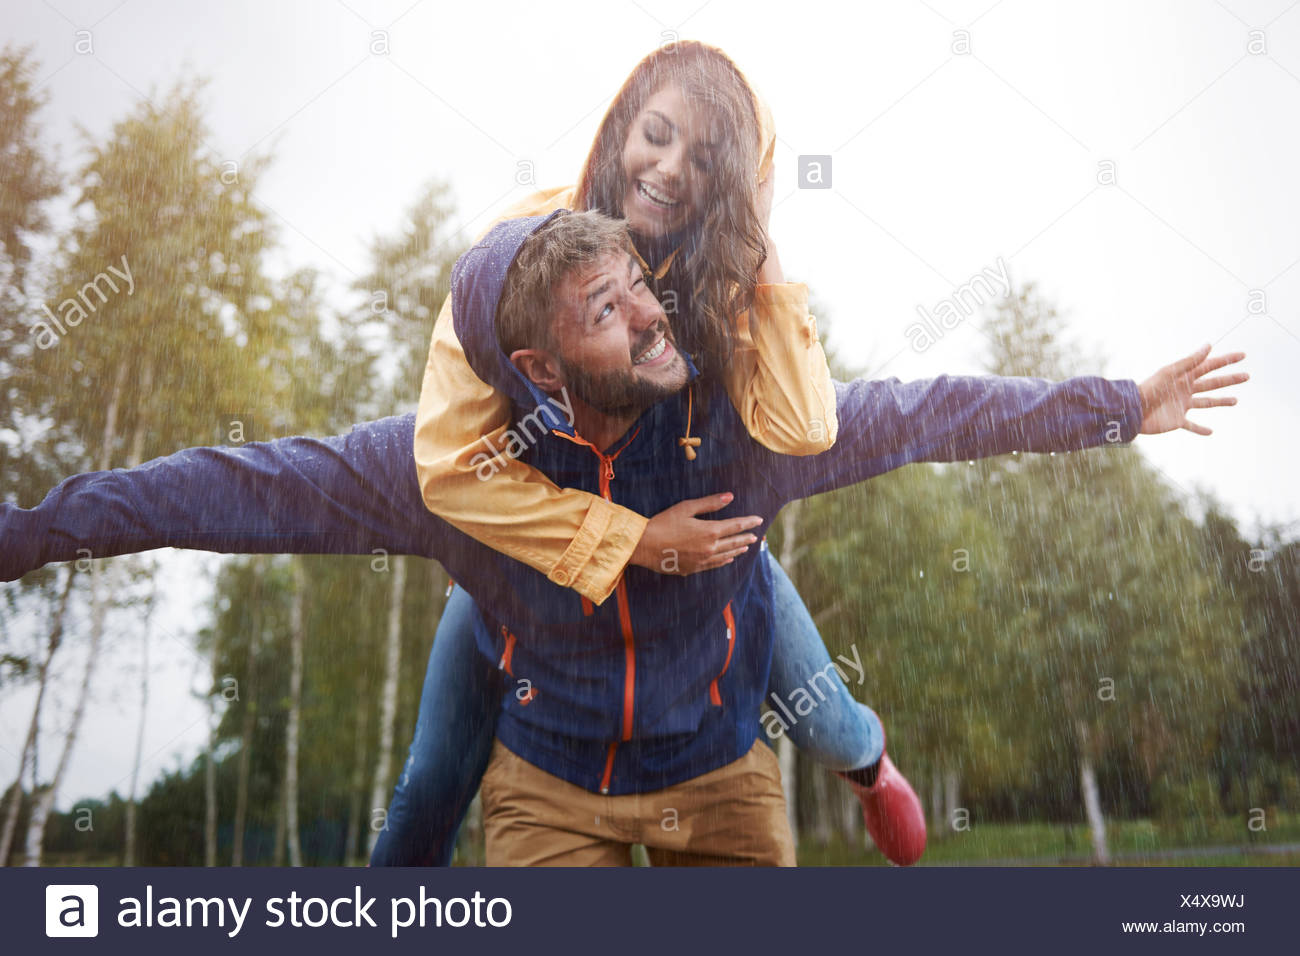 Playing in the rain like a child. Debica, Poland - Stock Image